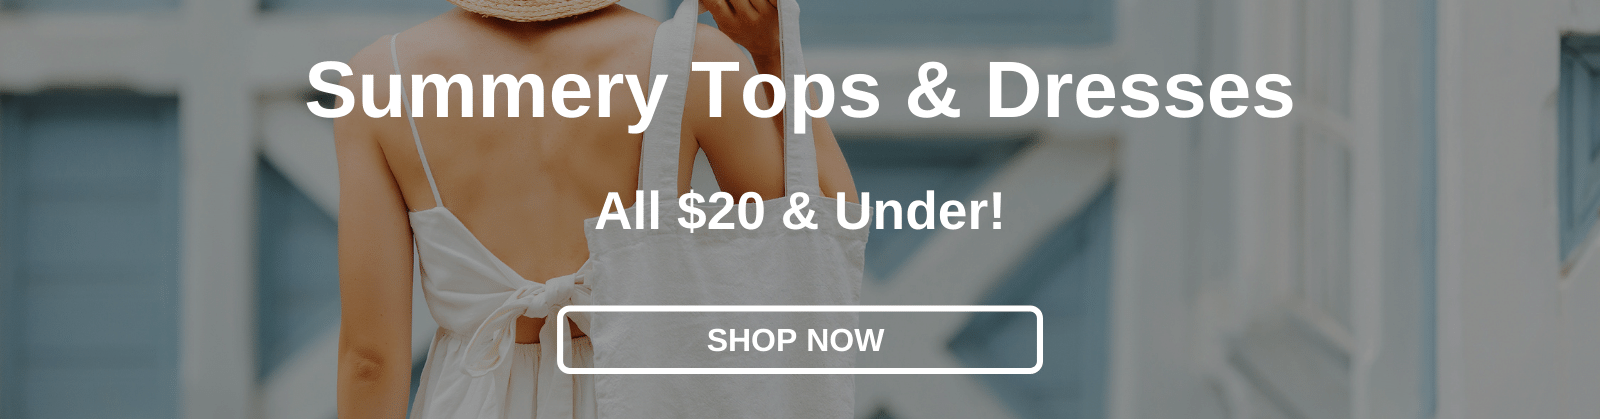 Summery Tops & Dresses All $20 or Less! [Shop Sale]